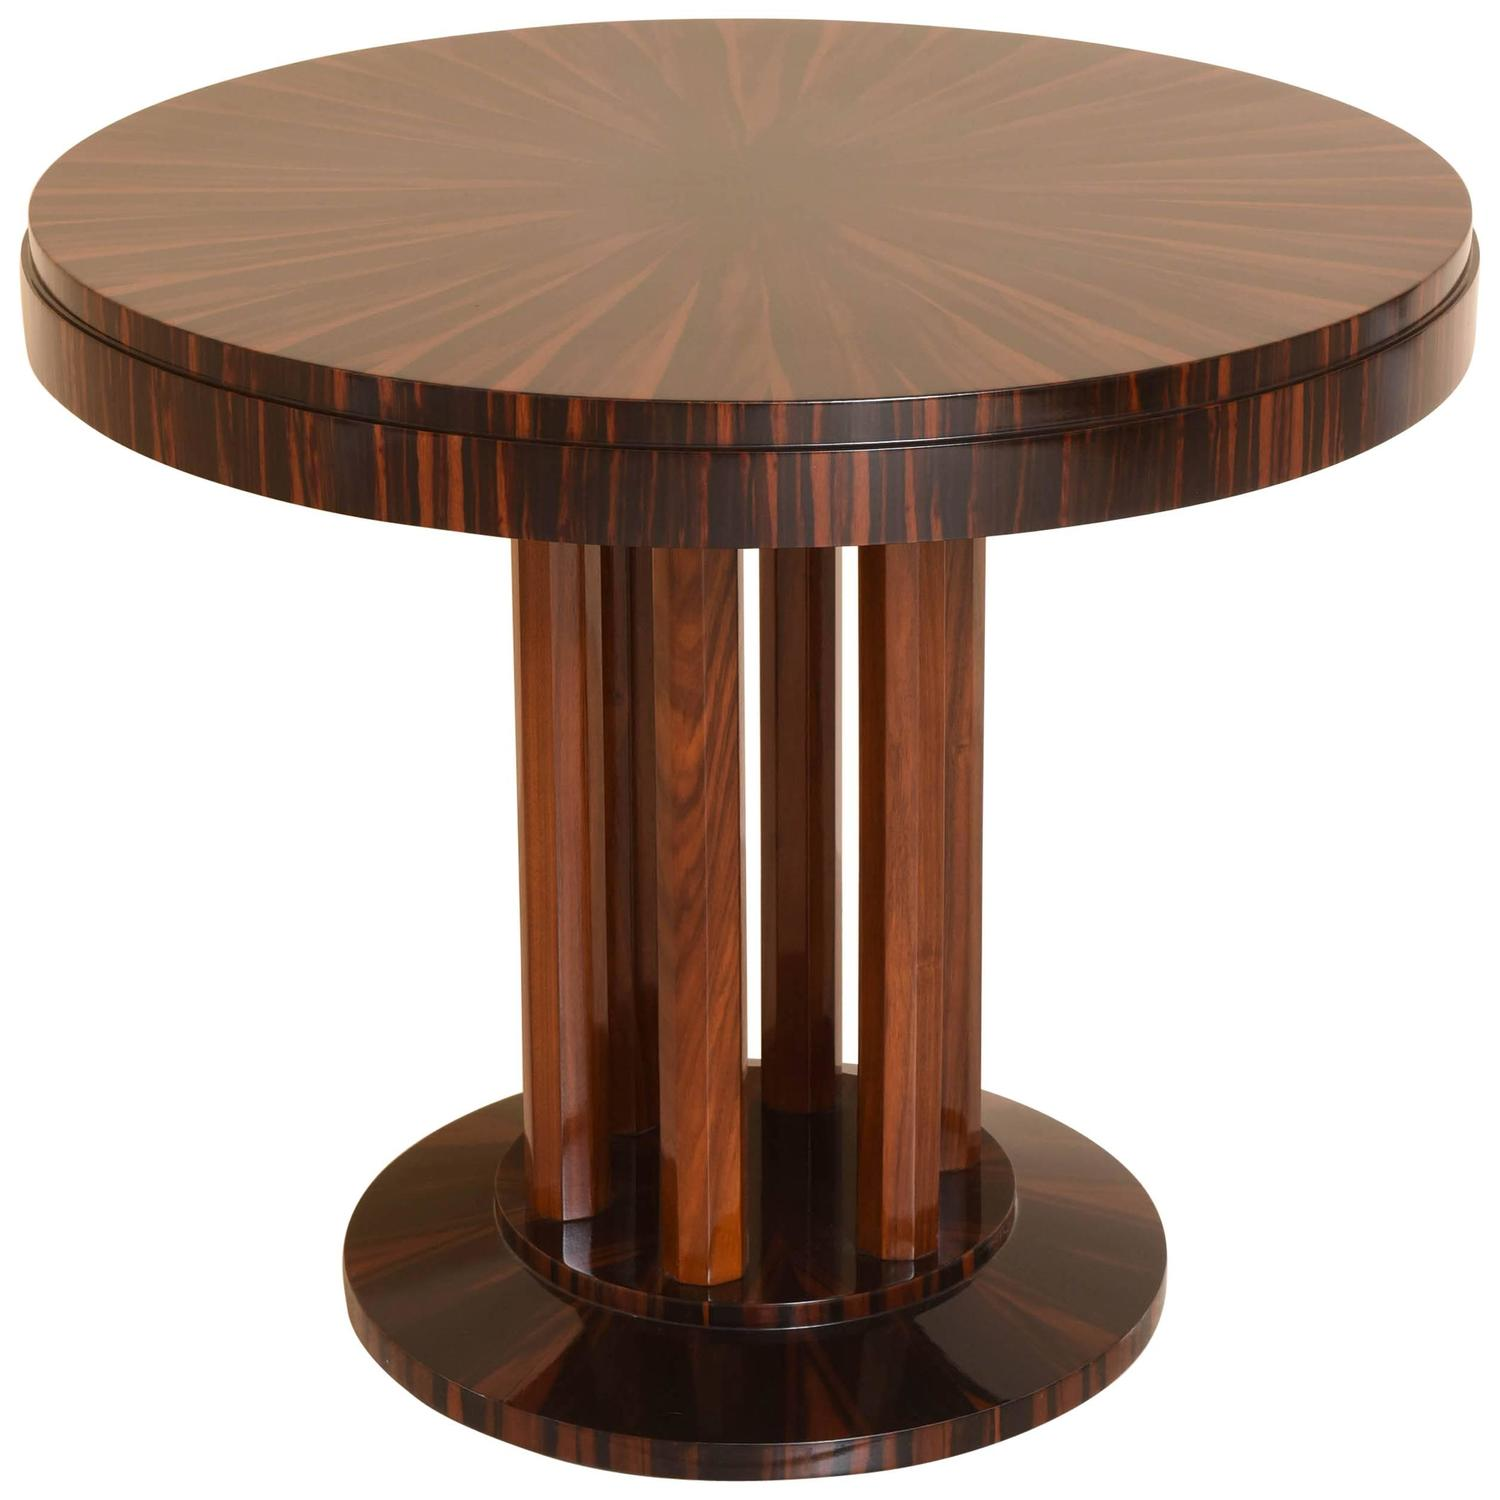 art deco center table with macassar wood maison rinck. Black Bedroom Furniture Sets. Home Design Ideas